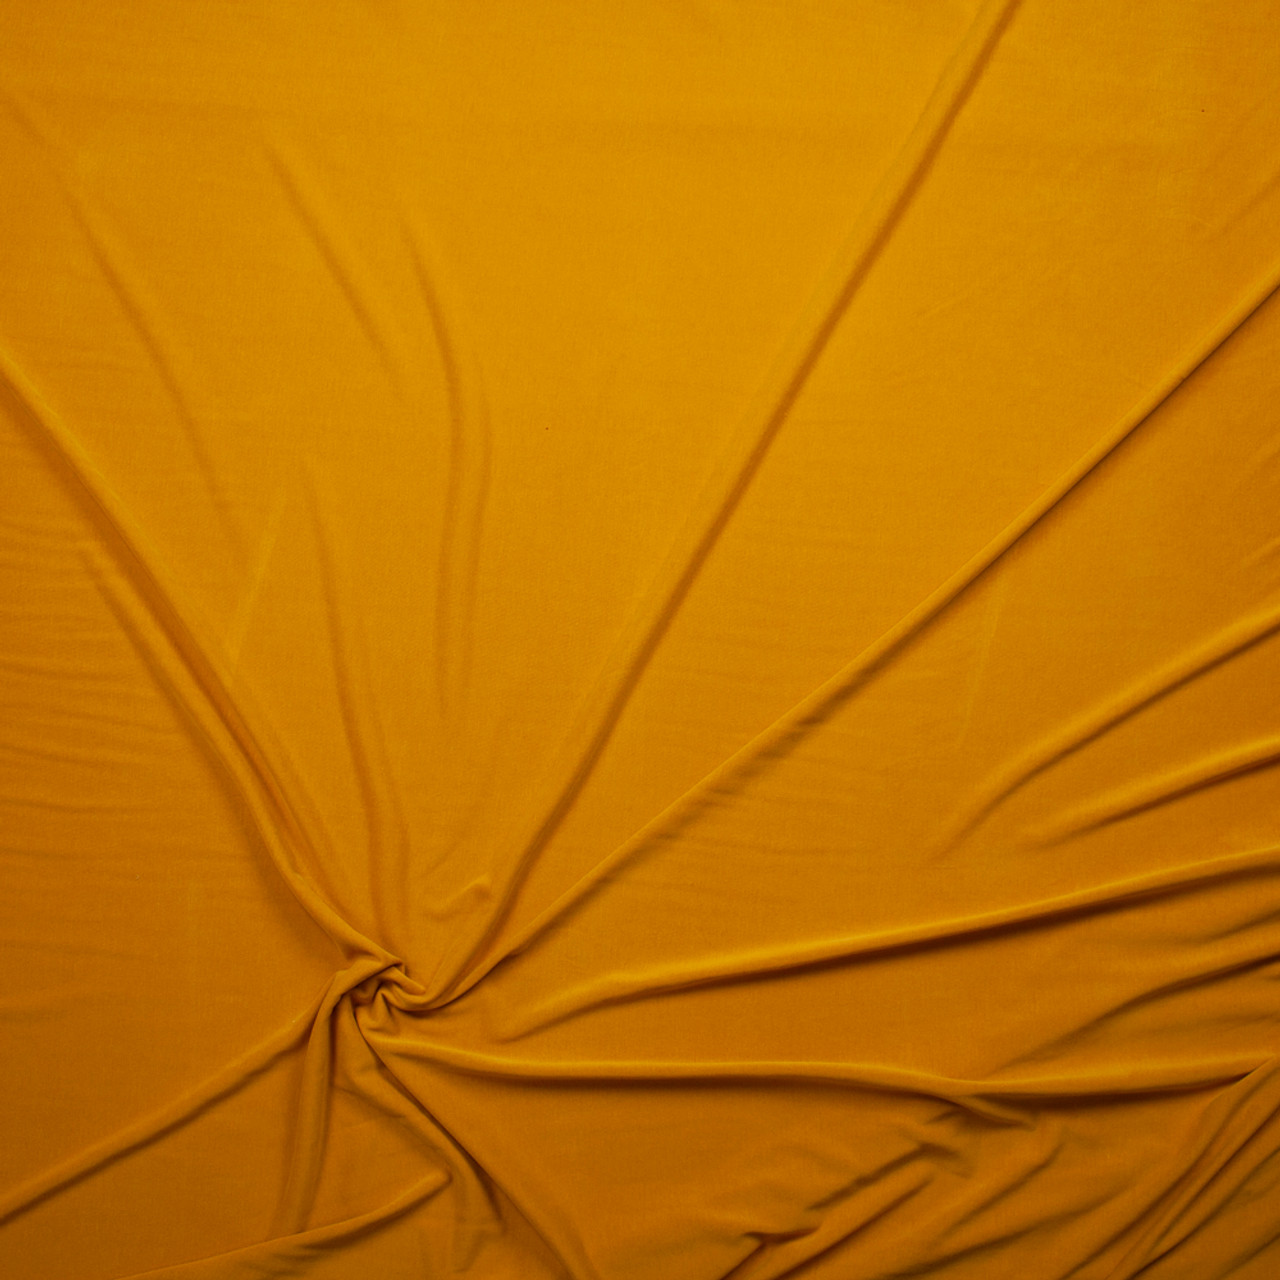 50bd2968311 ... Mustard Sand Washed Poly/Modal Jersey Knit Fabric By The Yard - Wide  shot